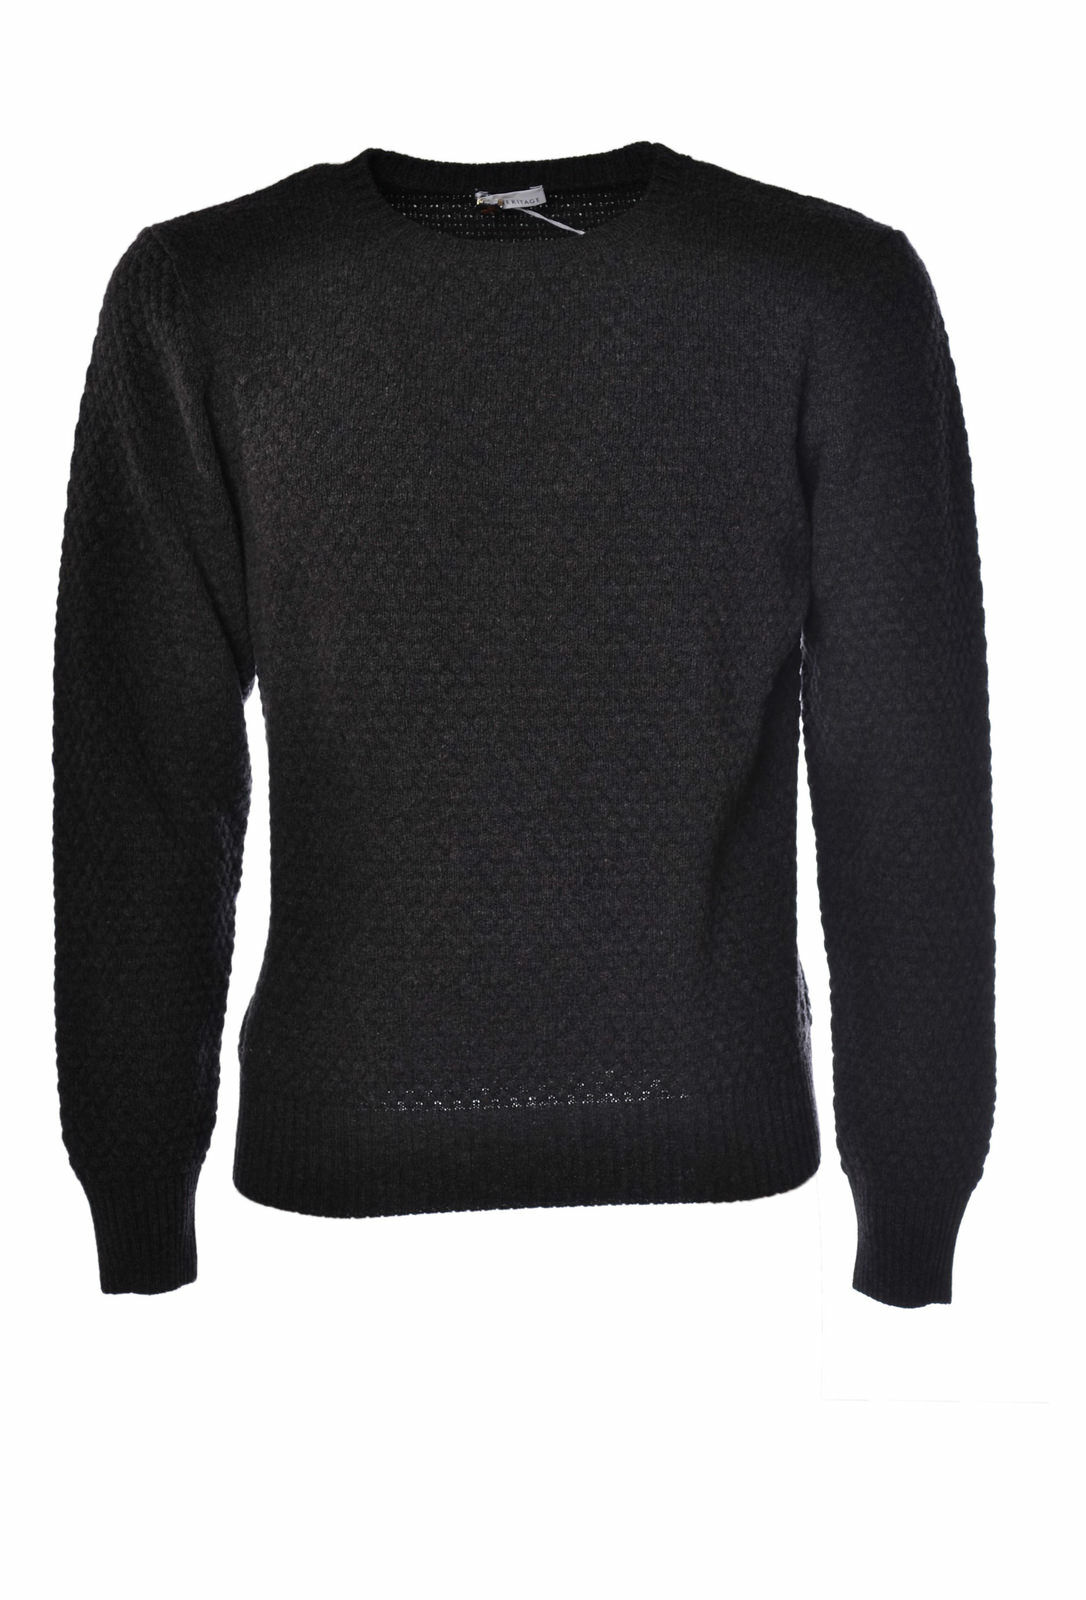 Heritage - Knitwear-Sweaters - Man - Grey - 1030718C184224